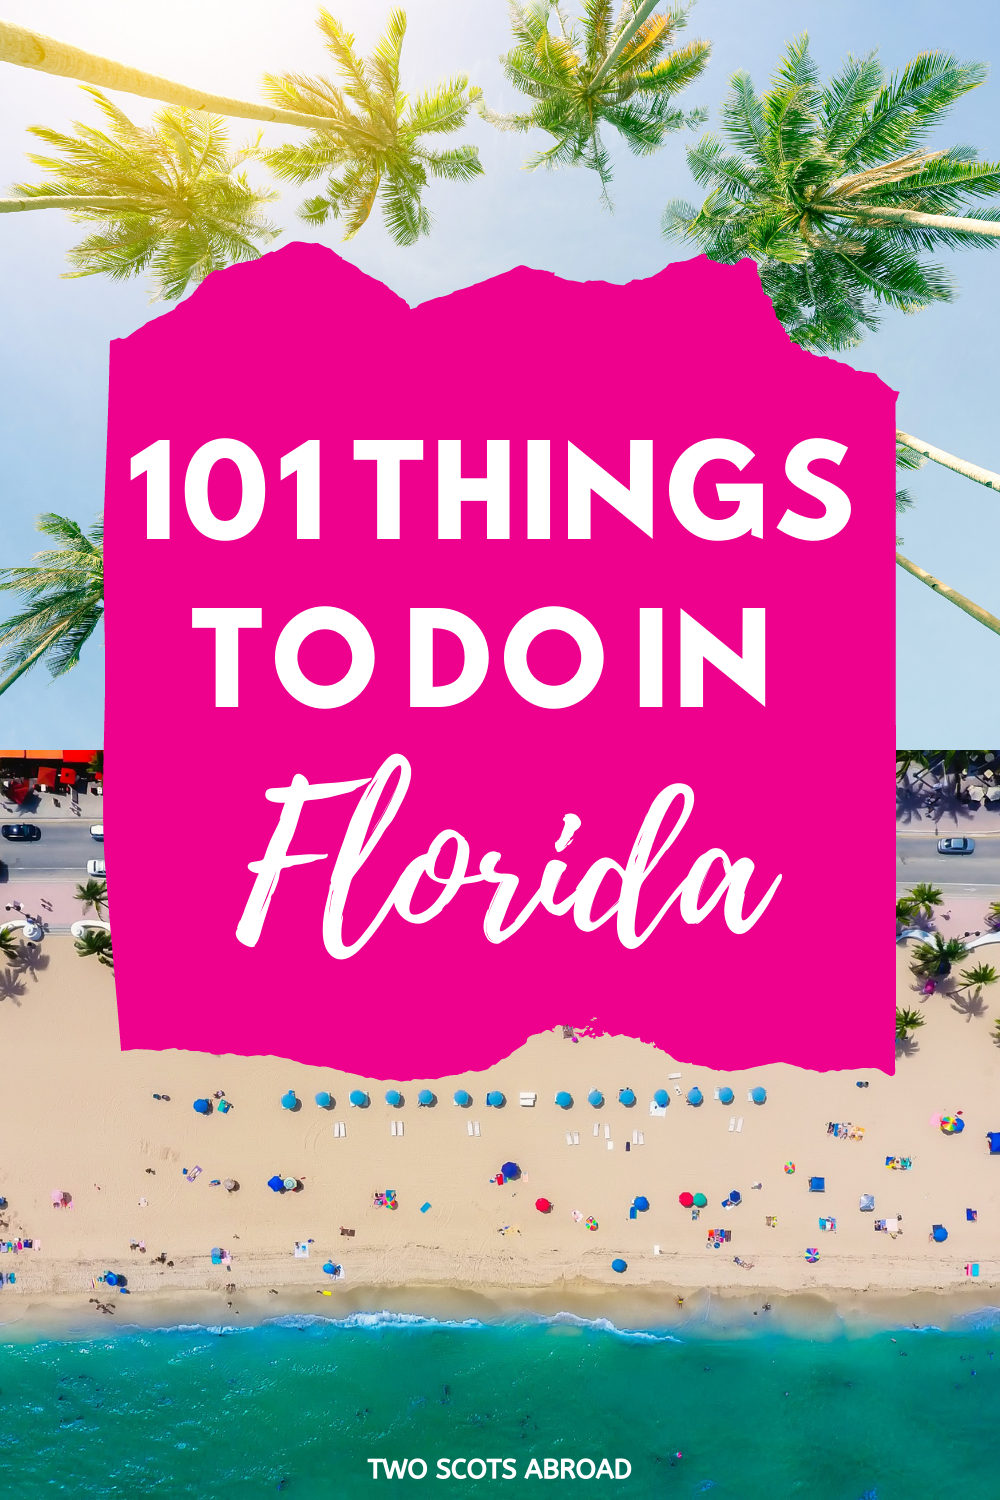 Florida Bucket List 101 Things To Do In Florida Florida Travel Travel Usa United States Travel Destinations